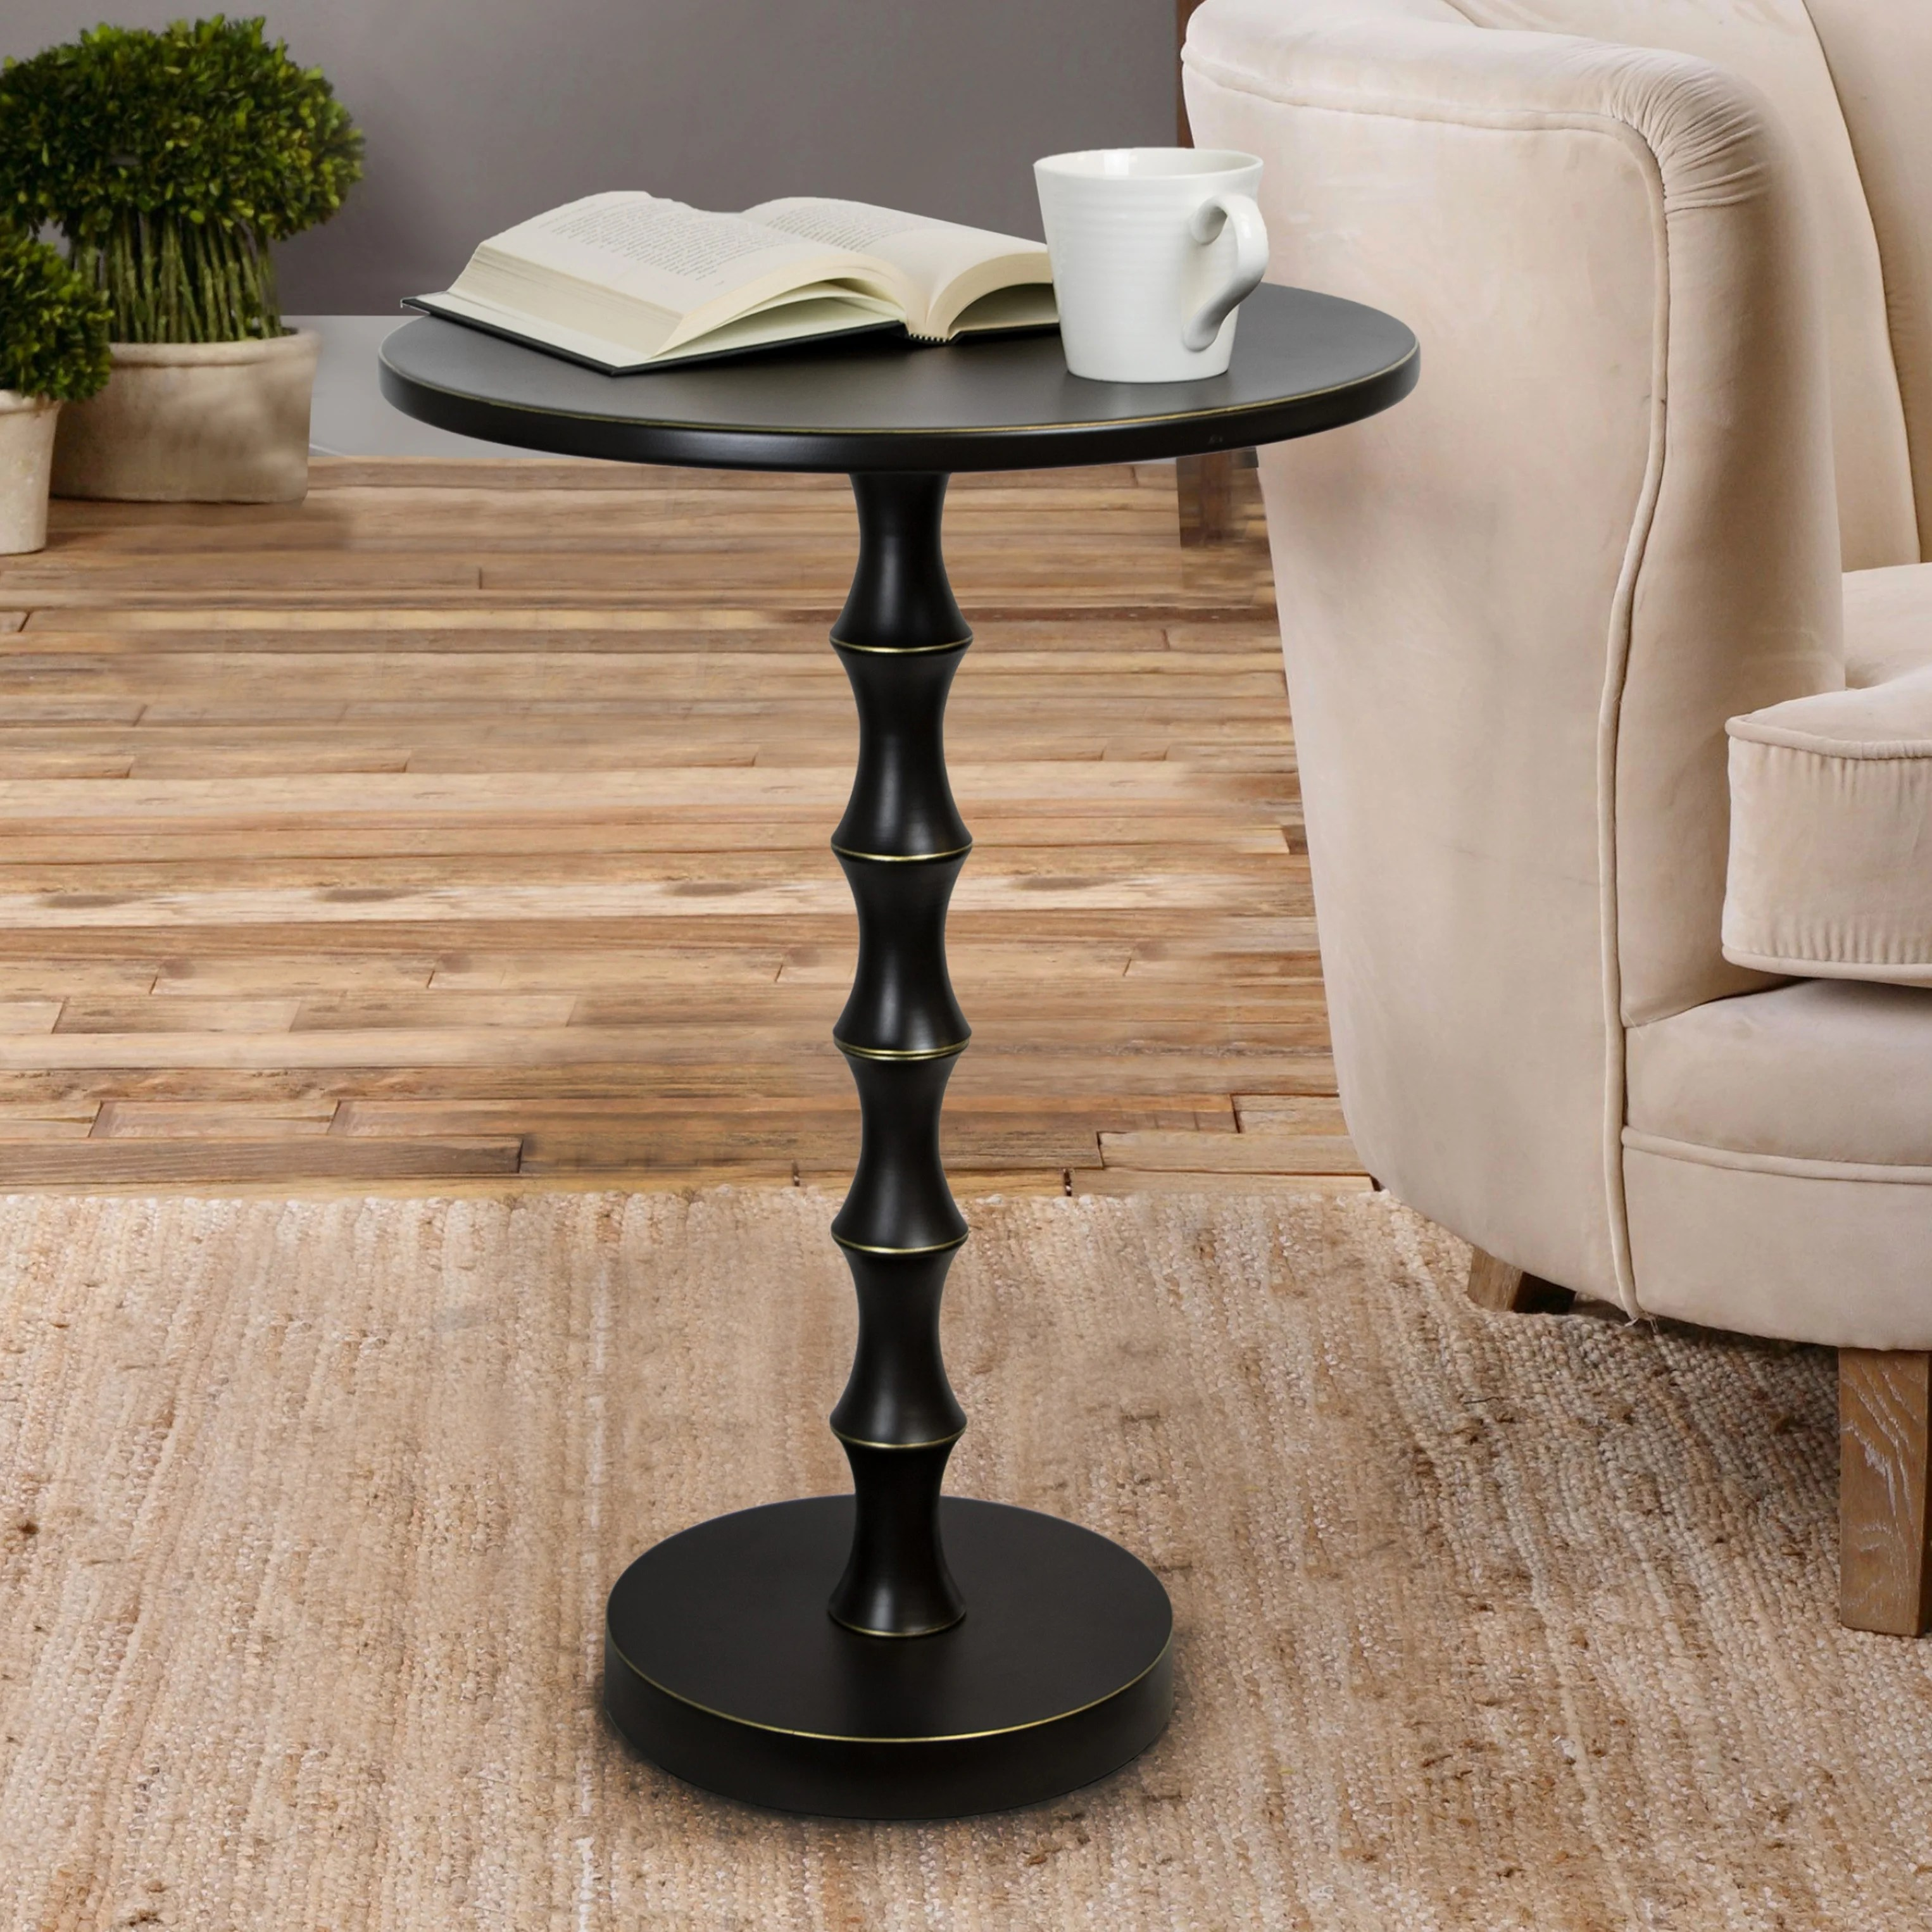 Shop Copper Grove Kalulushi 26 75 Inch Oiled Rubbed Bronze Metal Accent Table Overstock 29209217